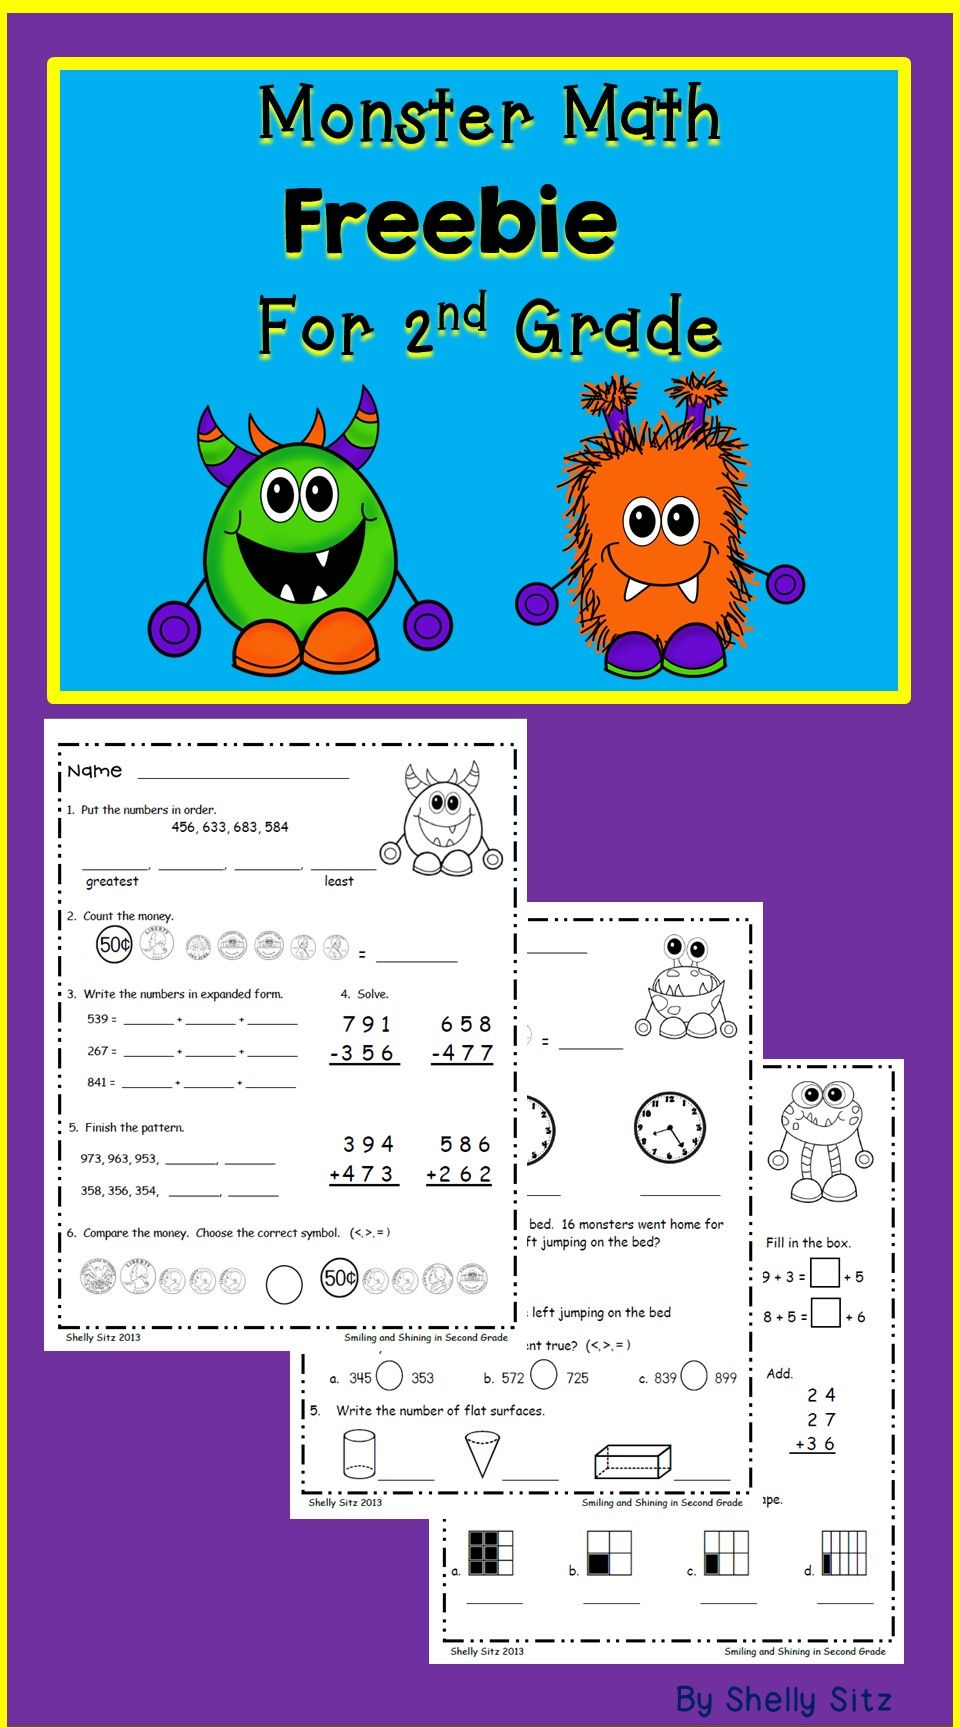 Printed) Monster Math Freebie for Second Grade--reviews 2nd grade ...